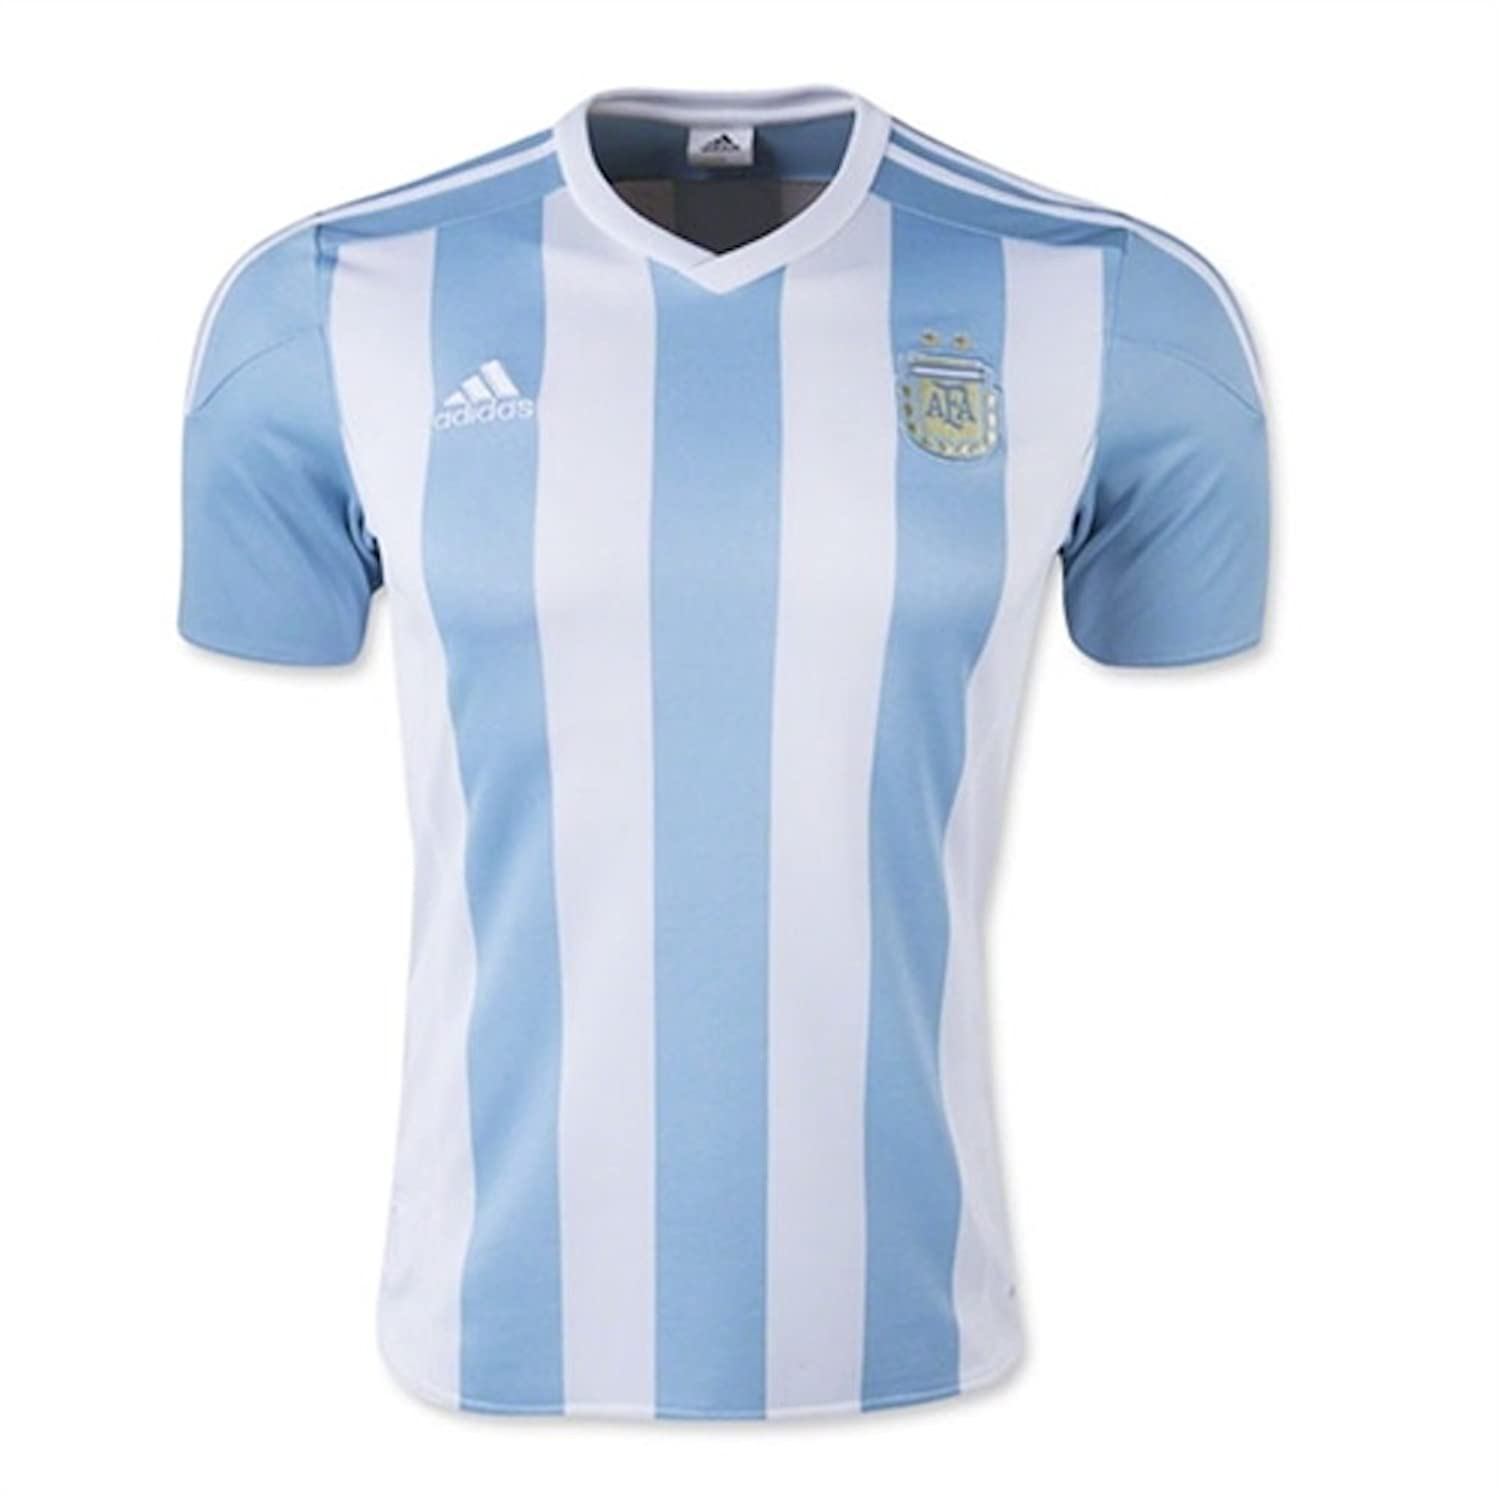 e642ff9ce99a7 Adidas Argentina Home Climacool Soccer Jersey (White, Blue) new ...